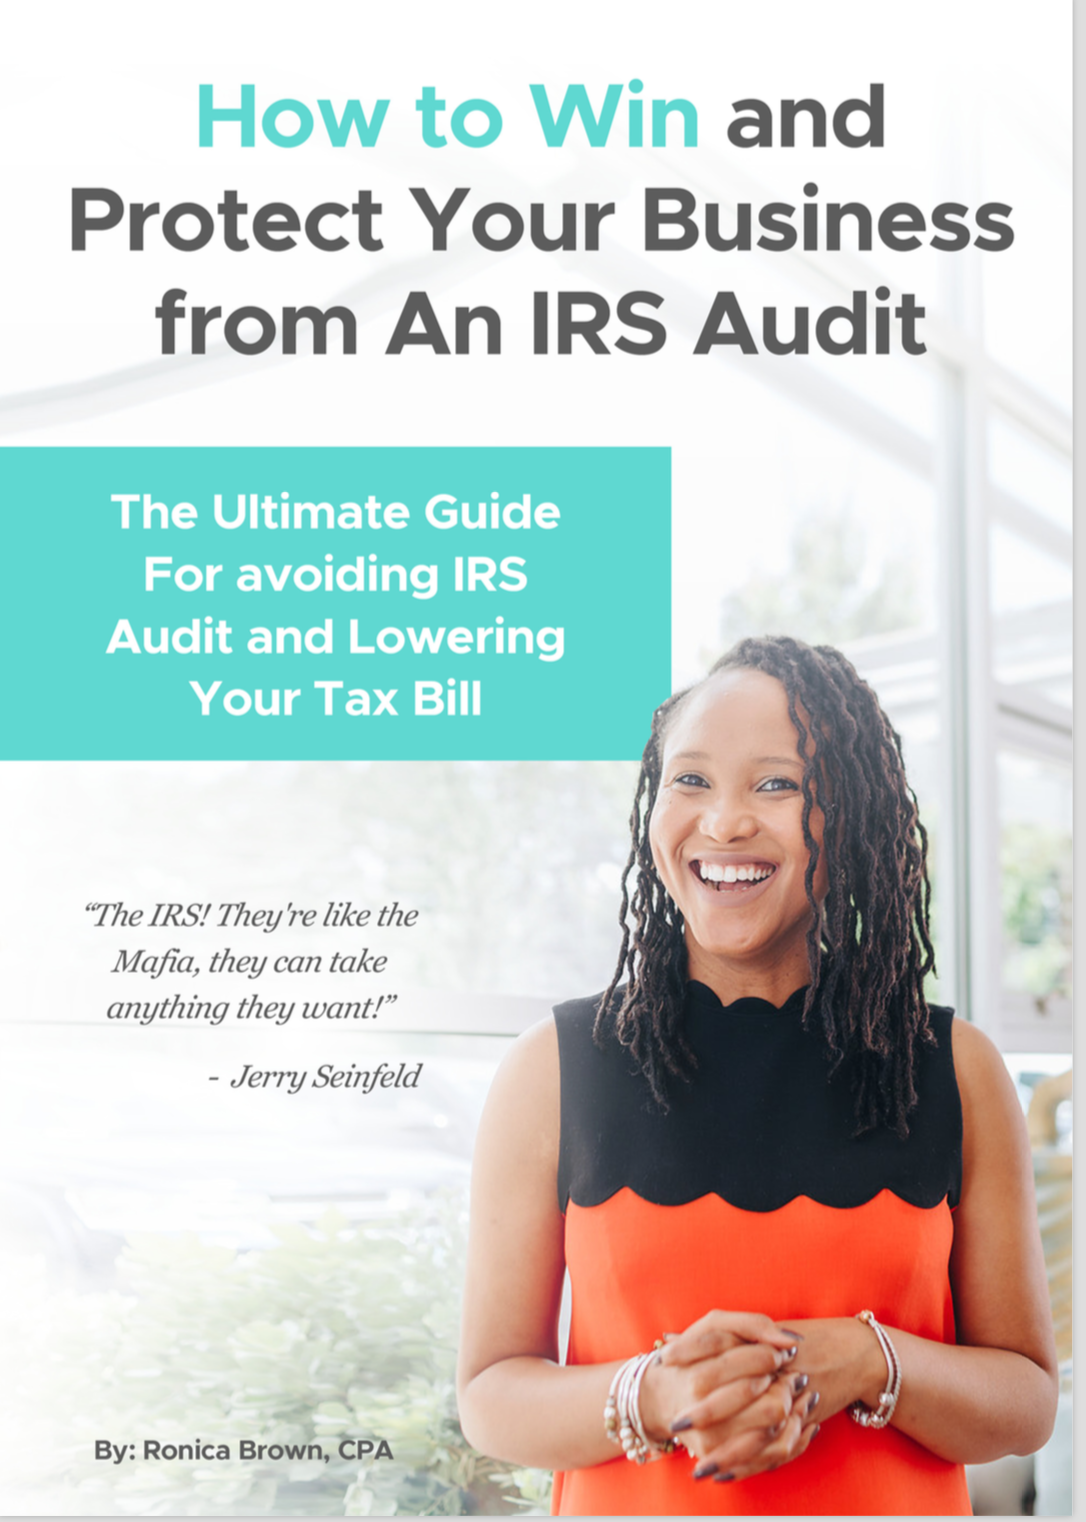 How to Win and Protect Your Business From An IRS Audit.png